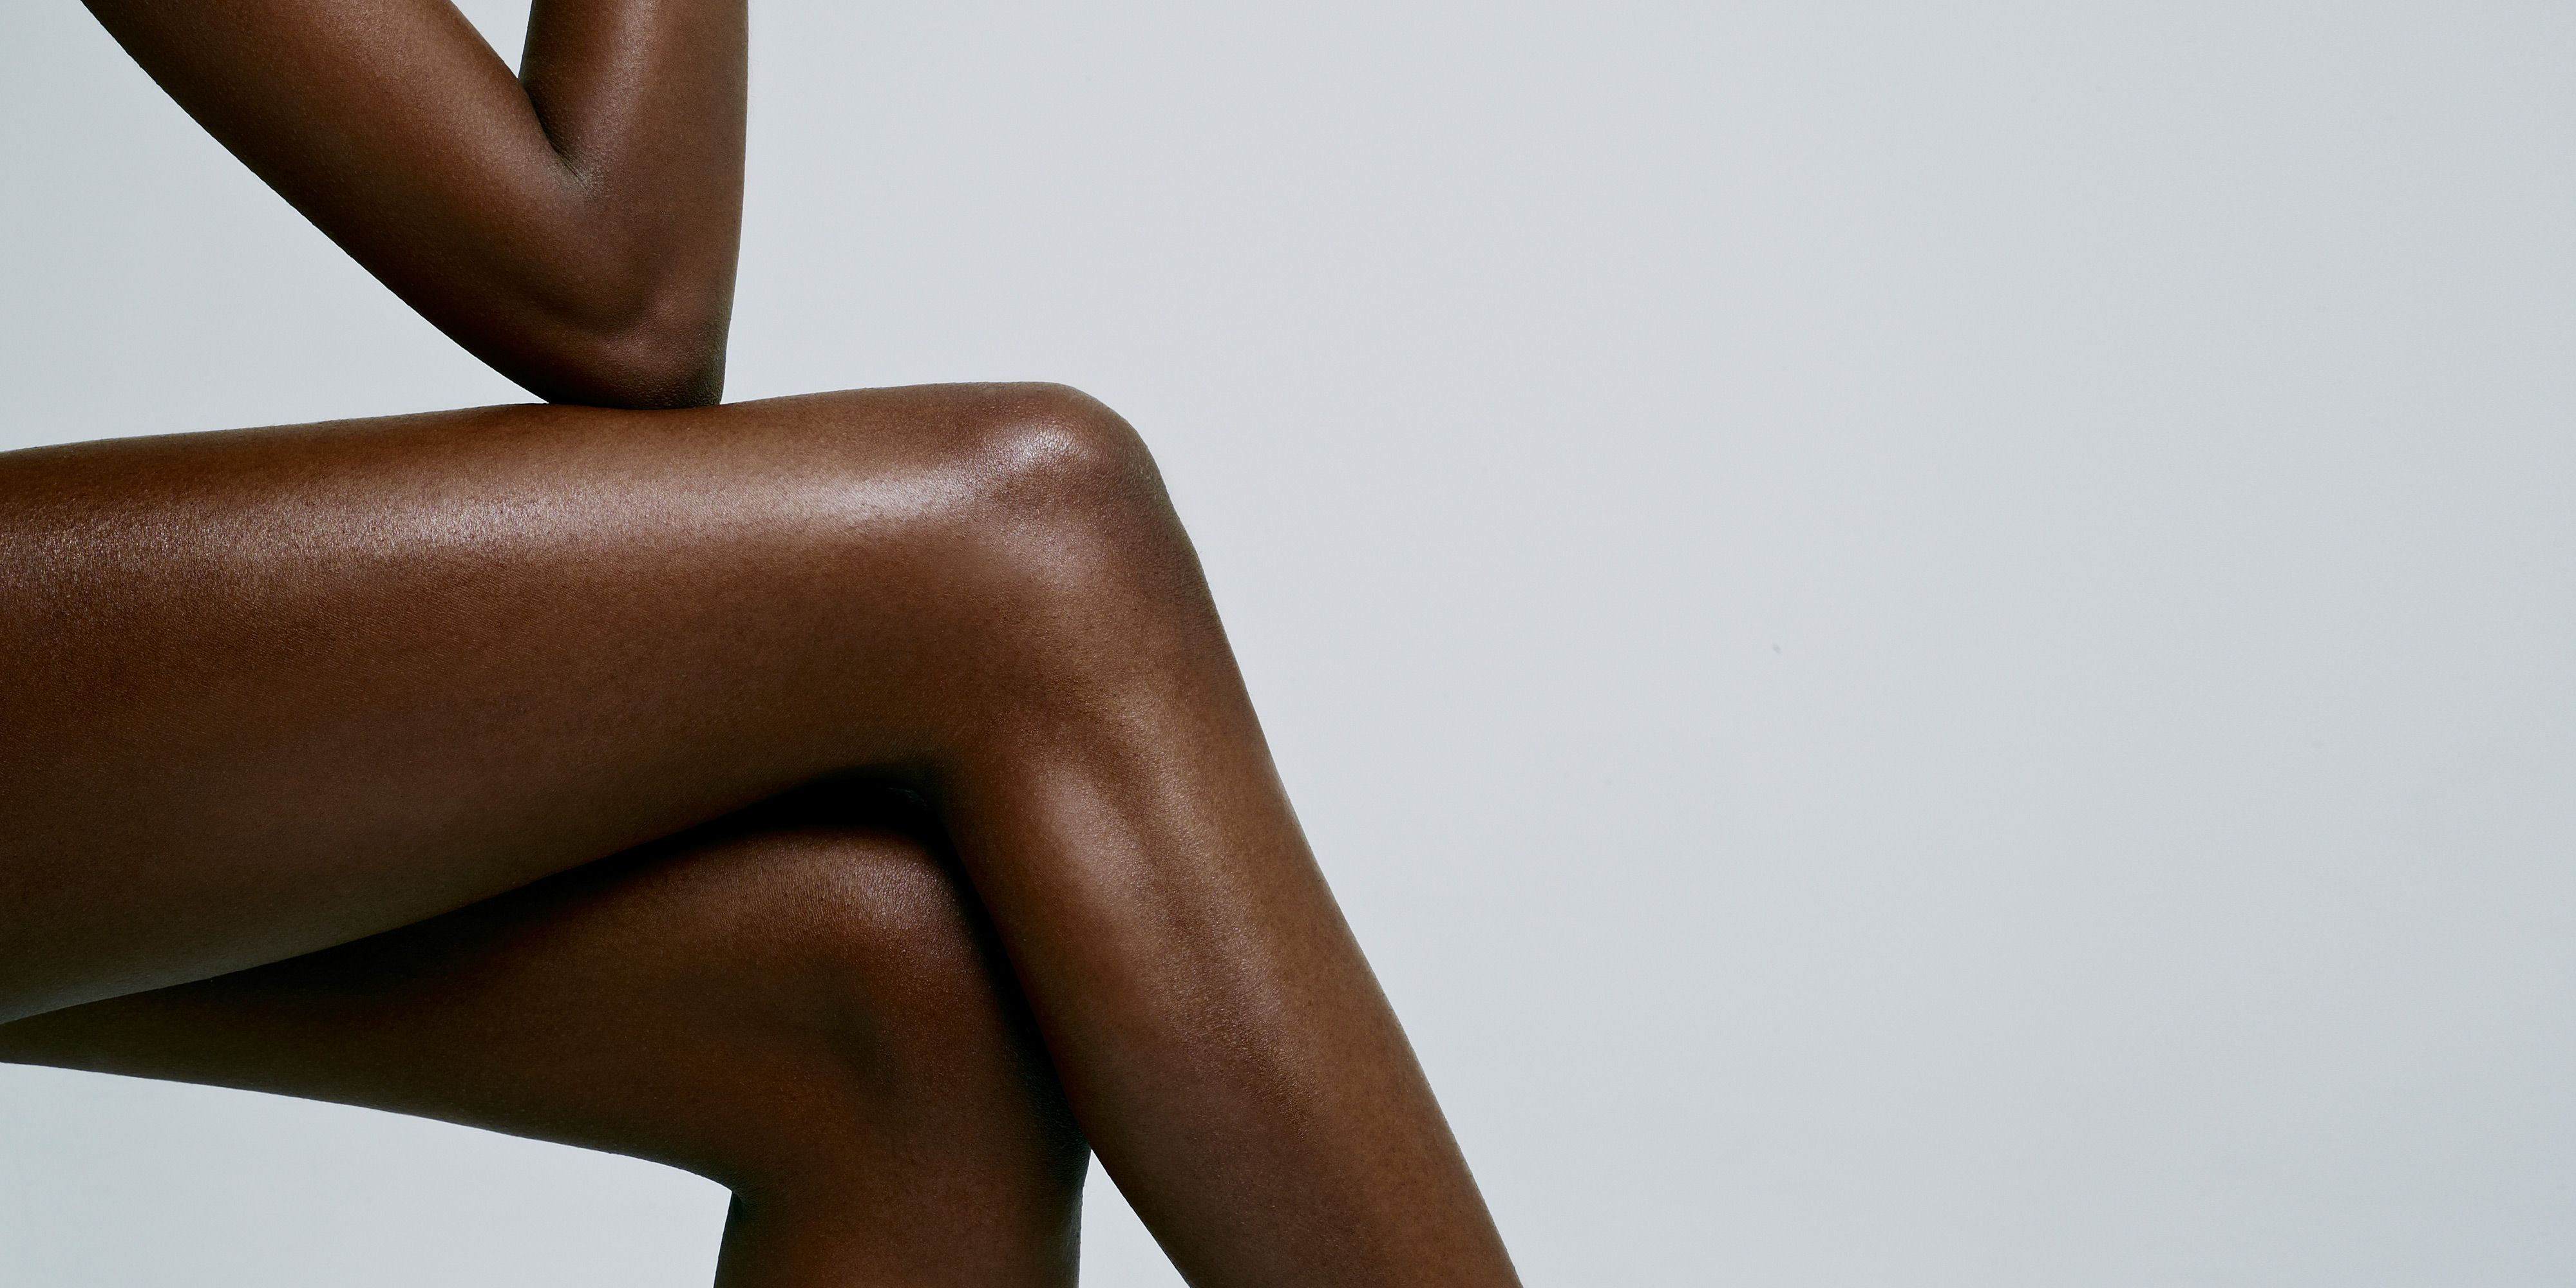 How To Get Better Legs Habits That Are Bad For Legs